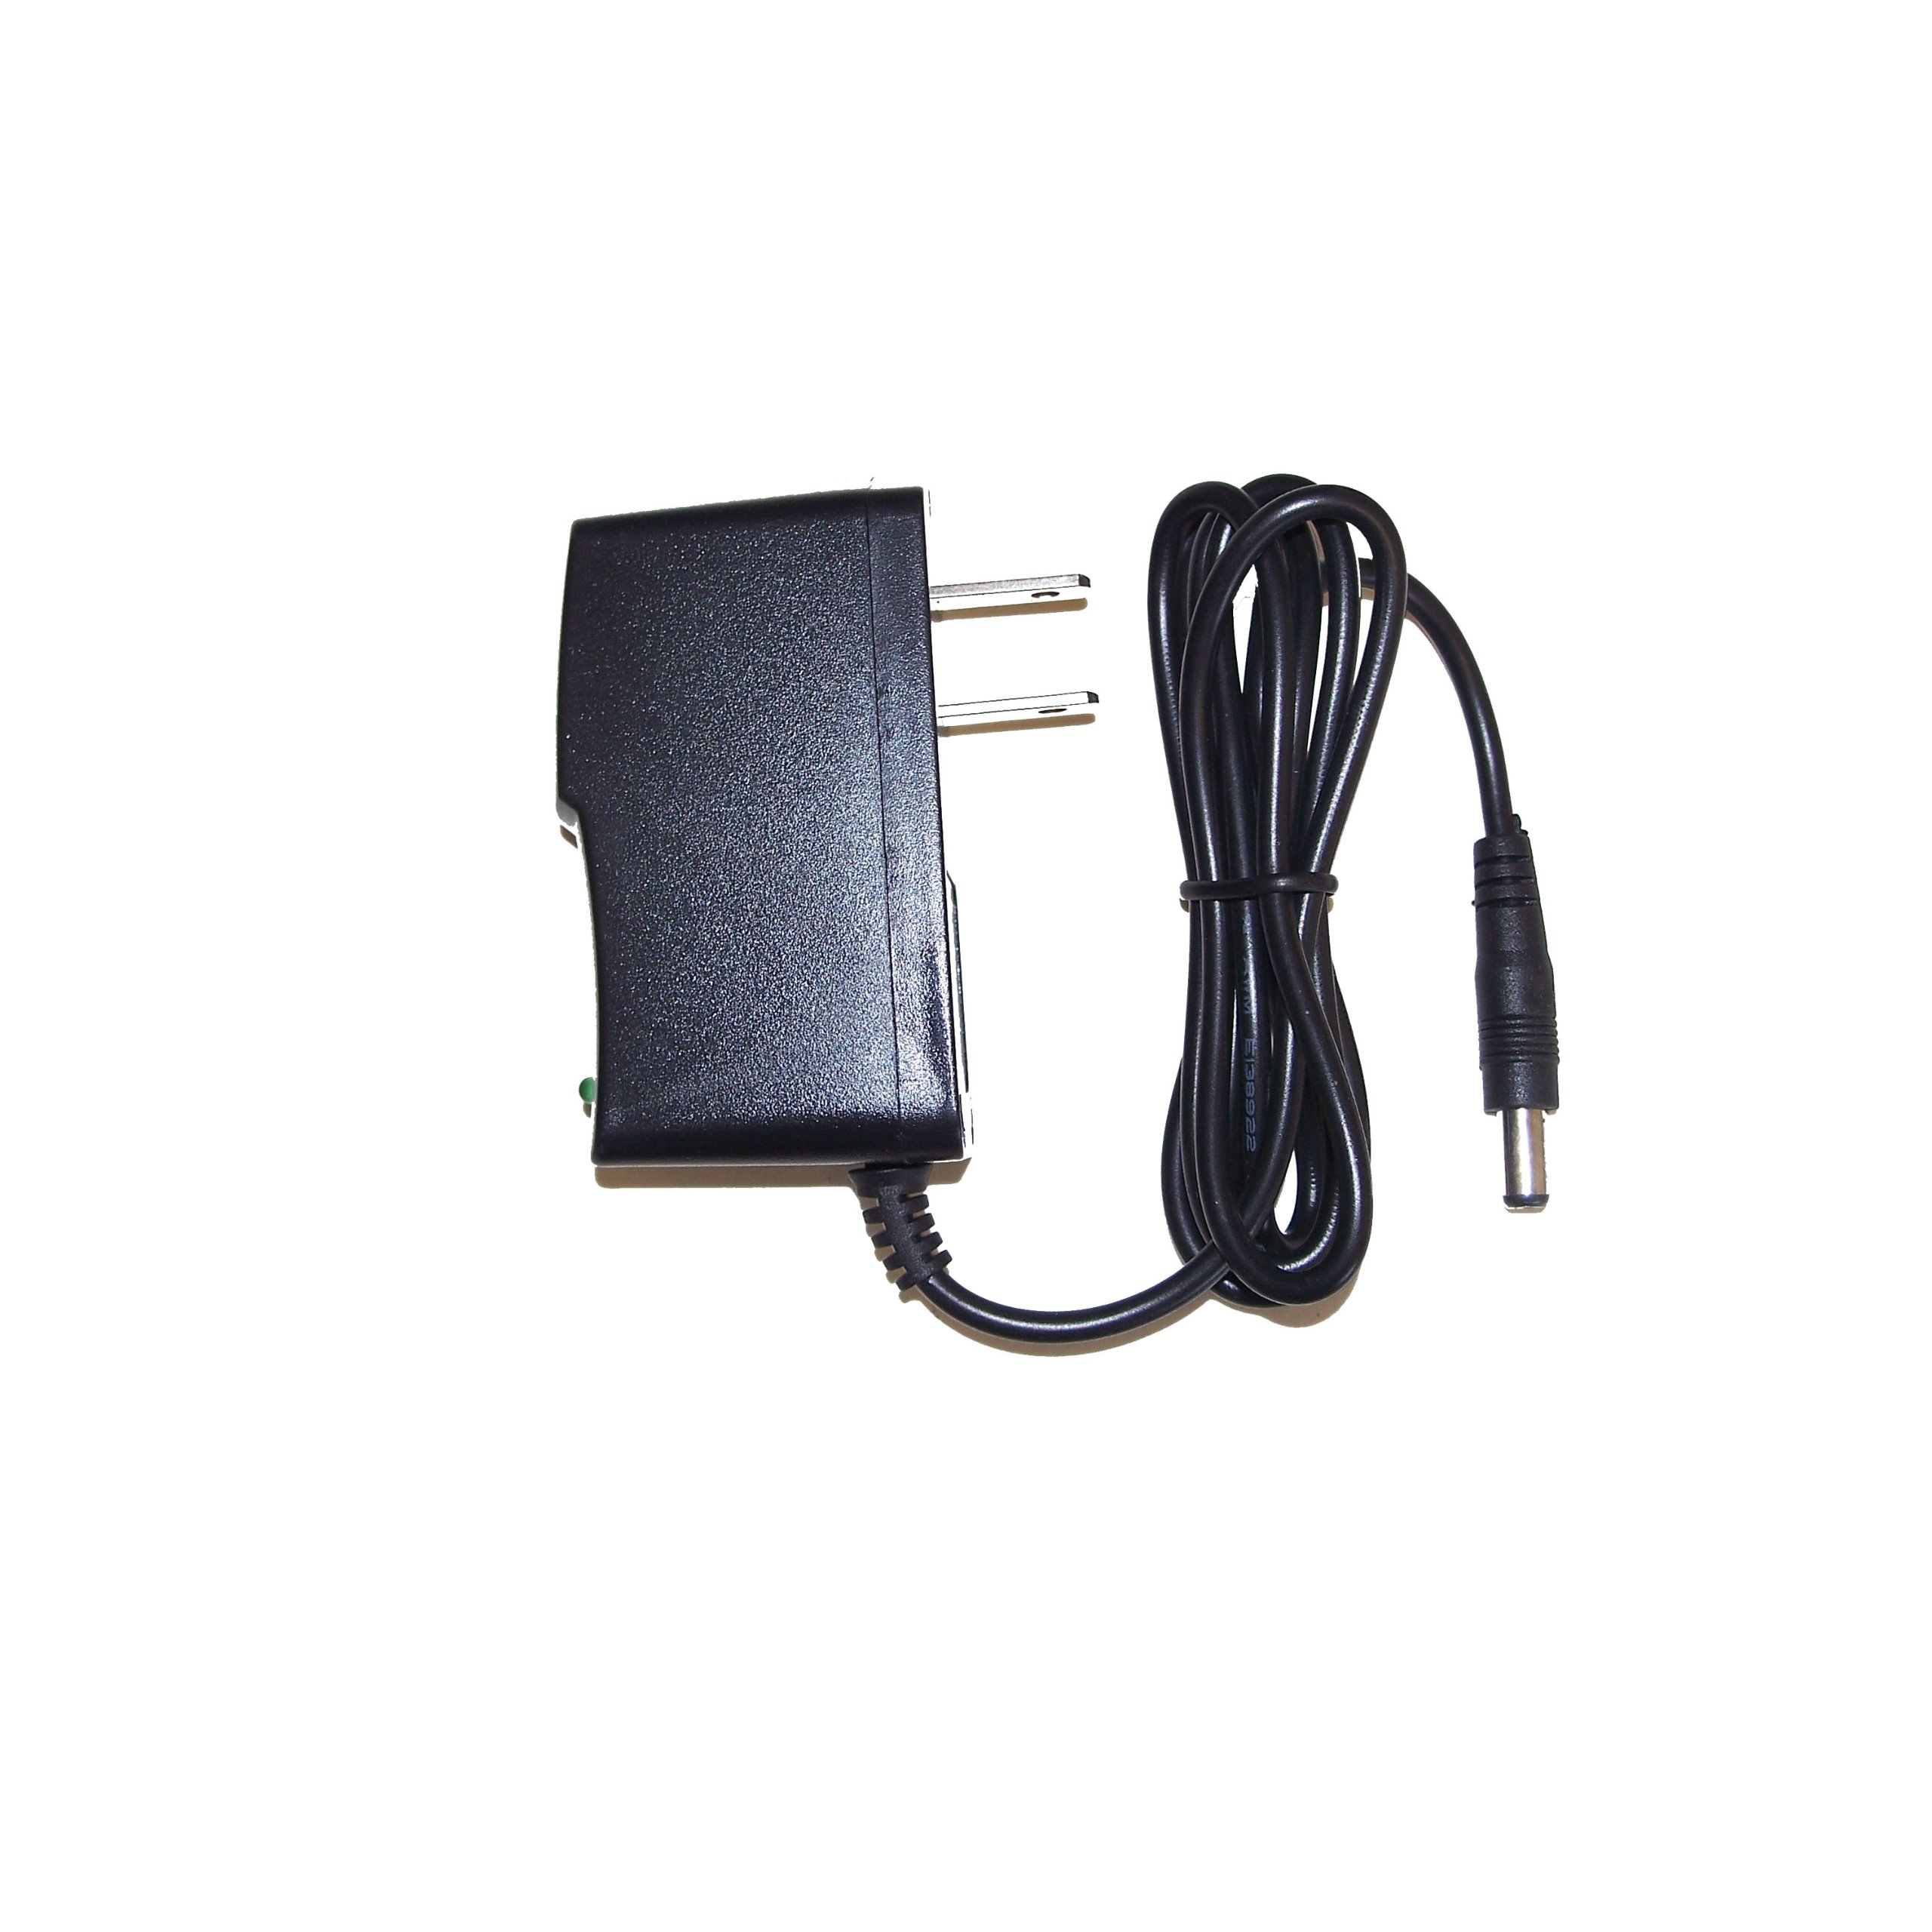 HOME WALL AC Power Adapter Replacement for GRECOM GRE PSR-600 ADVANCED DIGITAL SCANNER